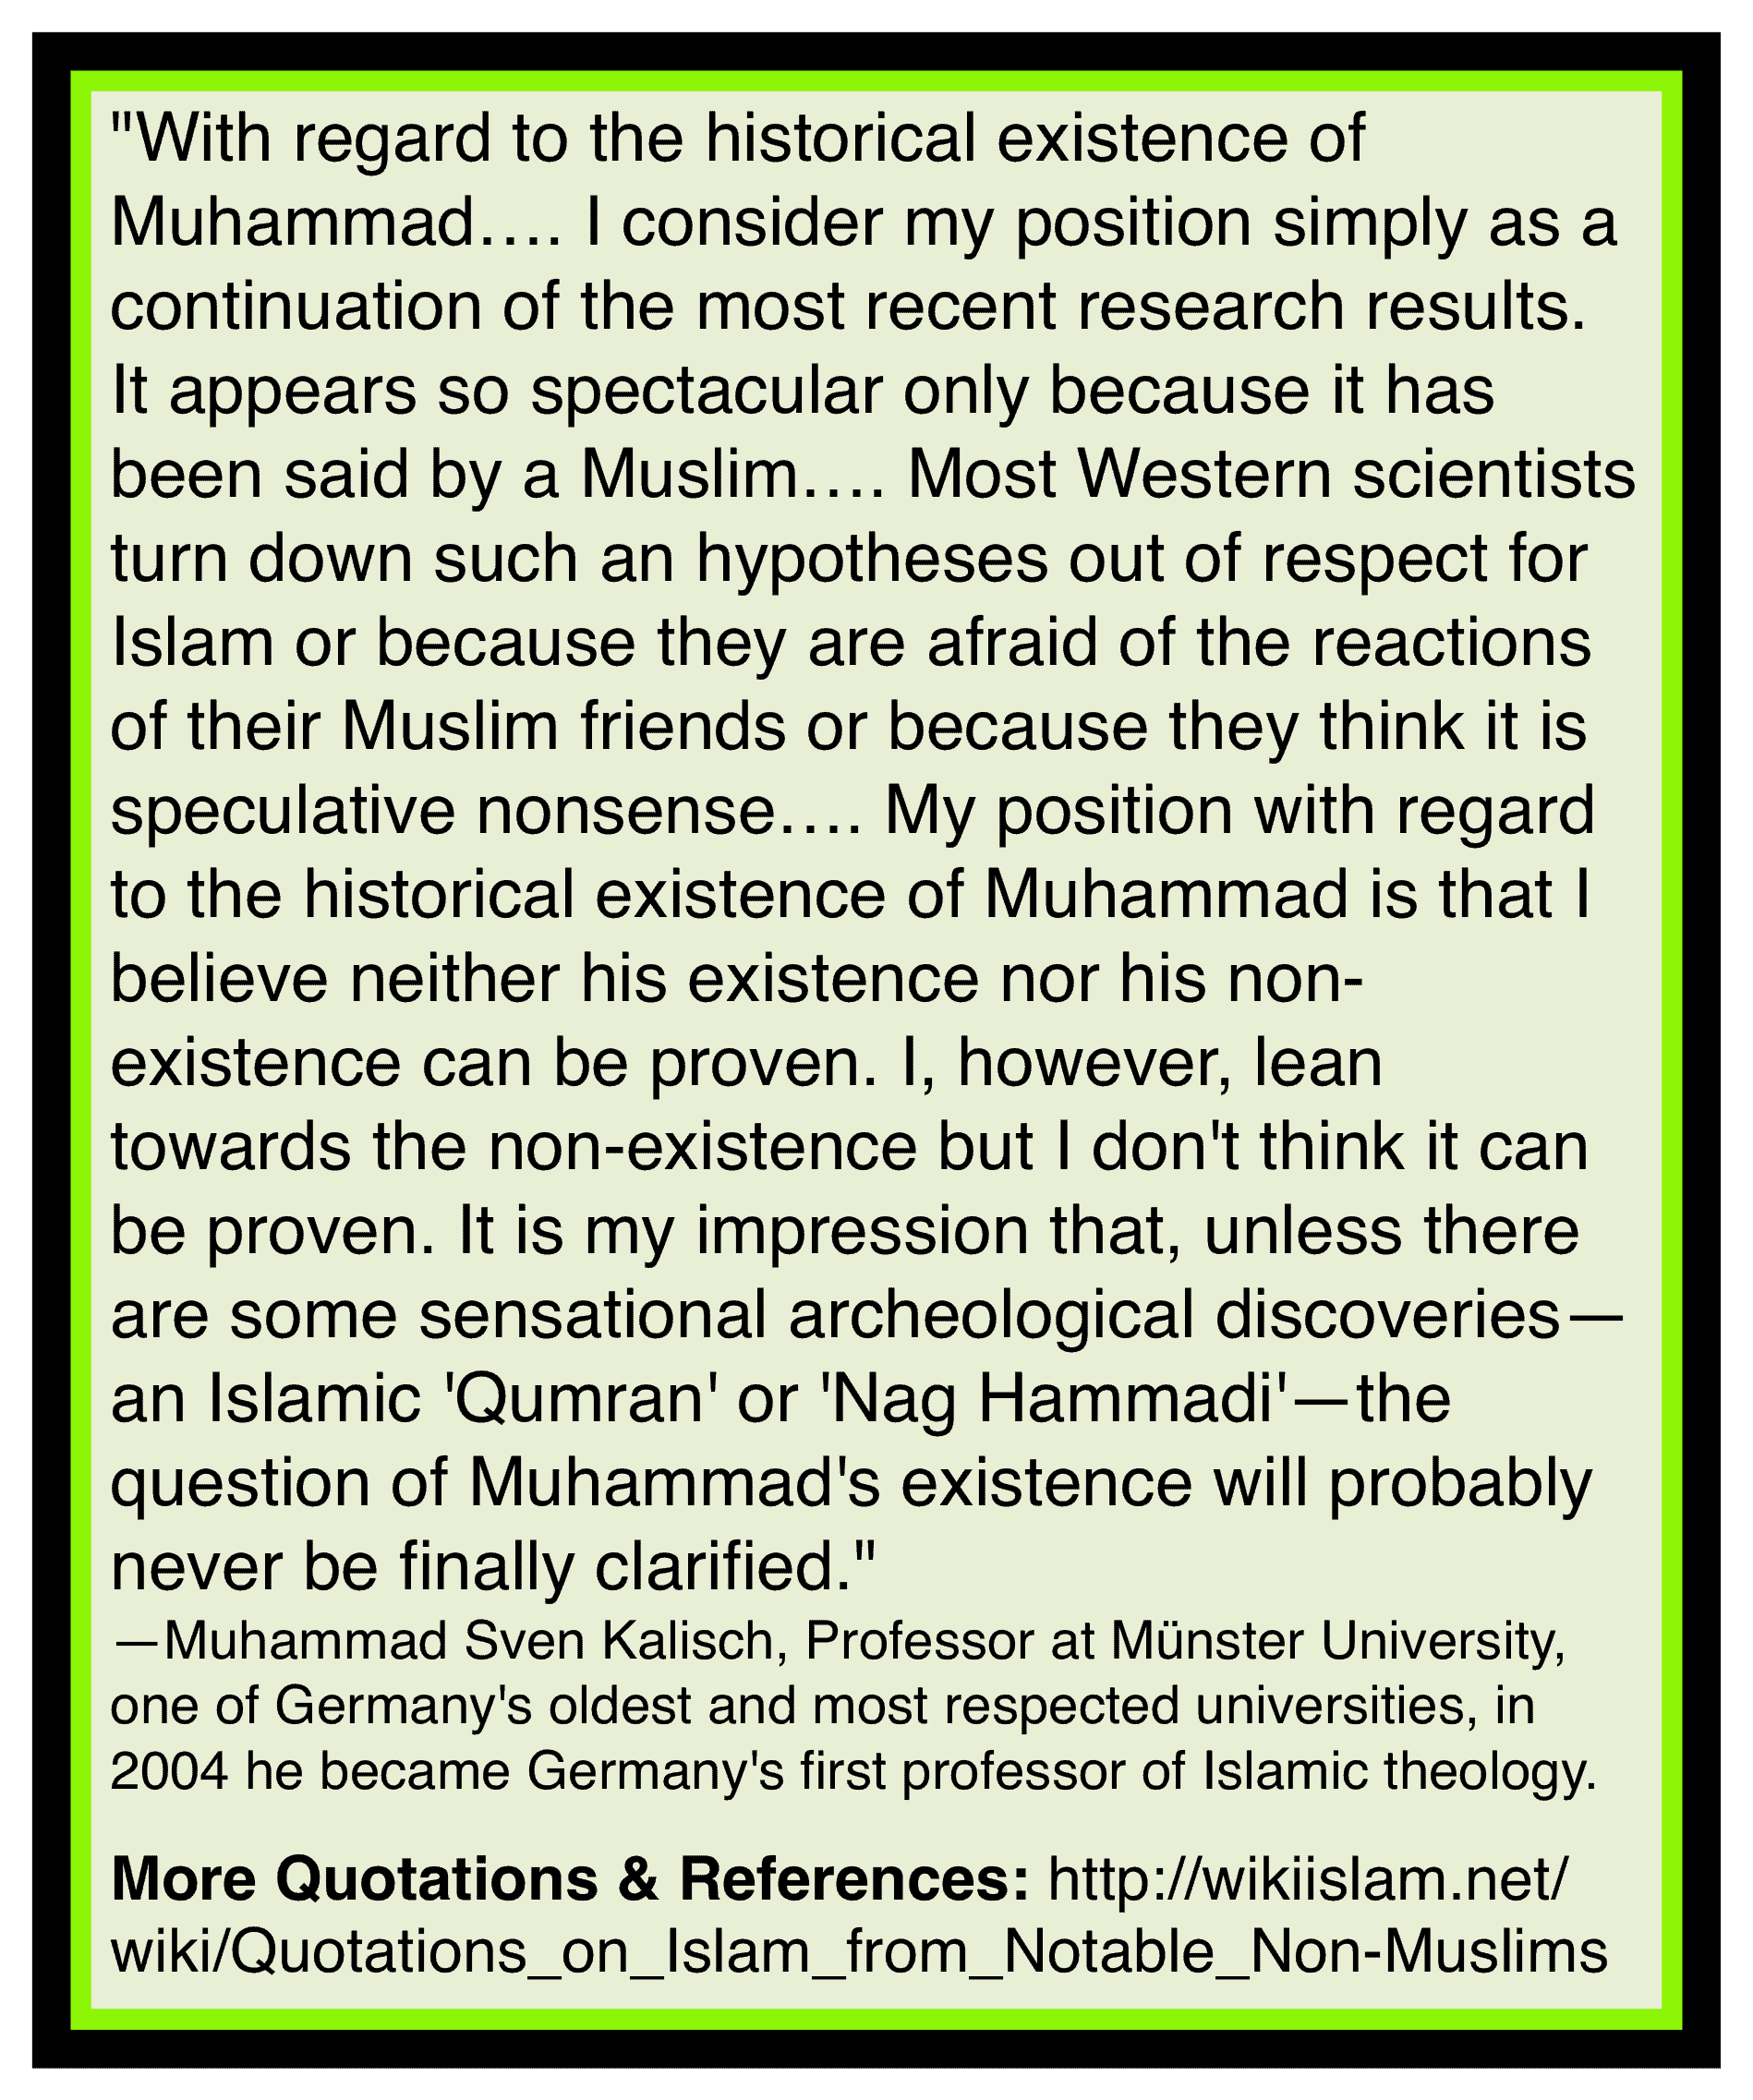 Muhammad based upon false claims